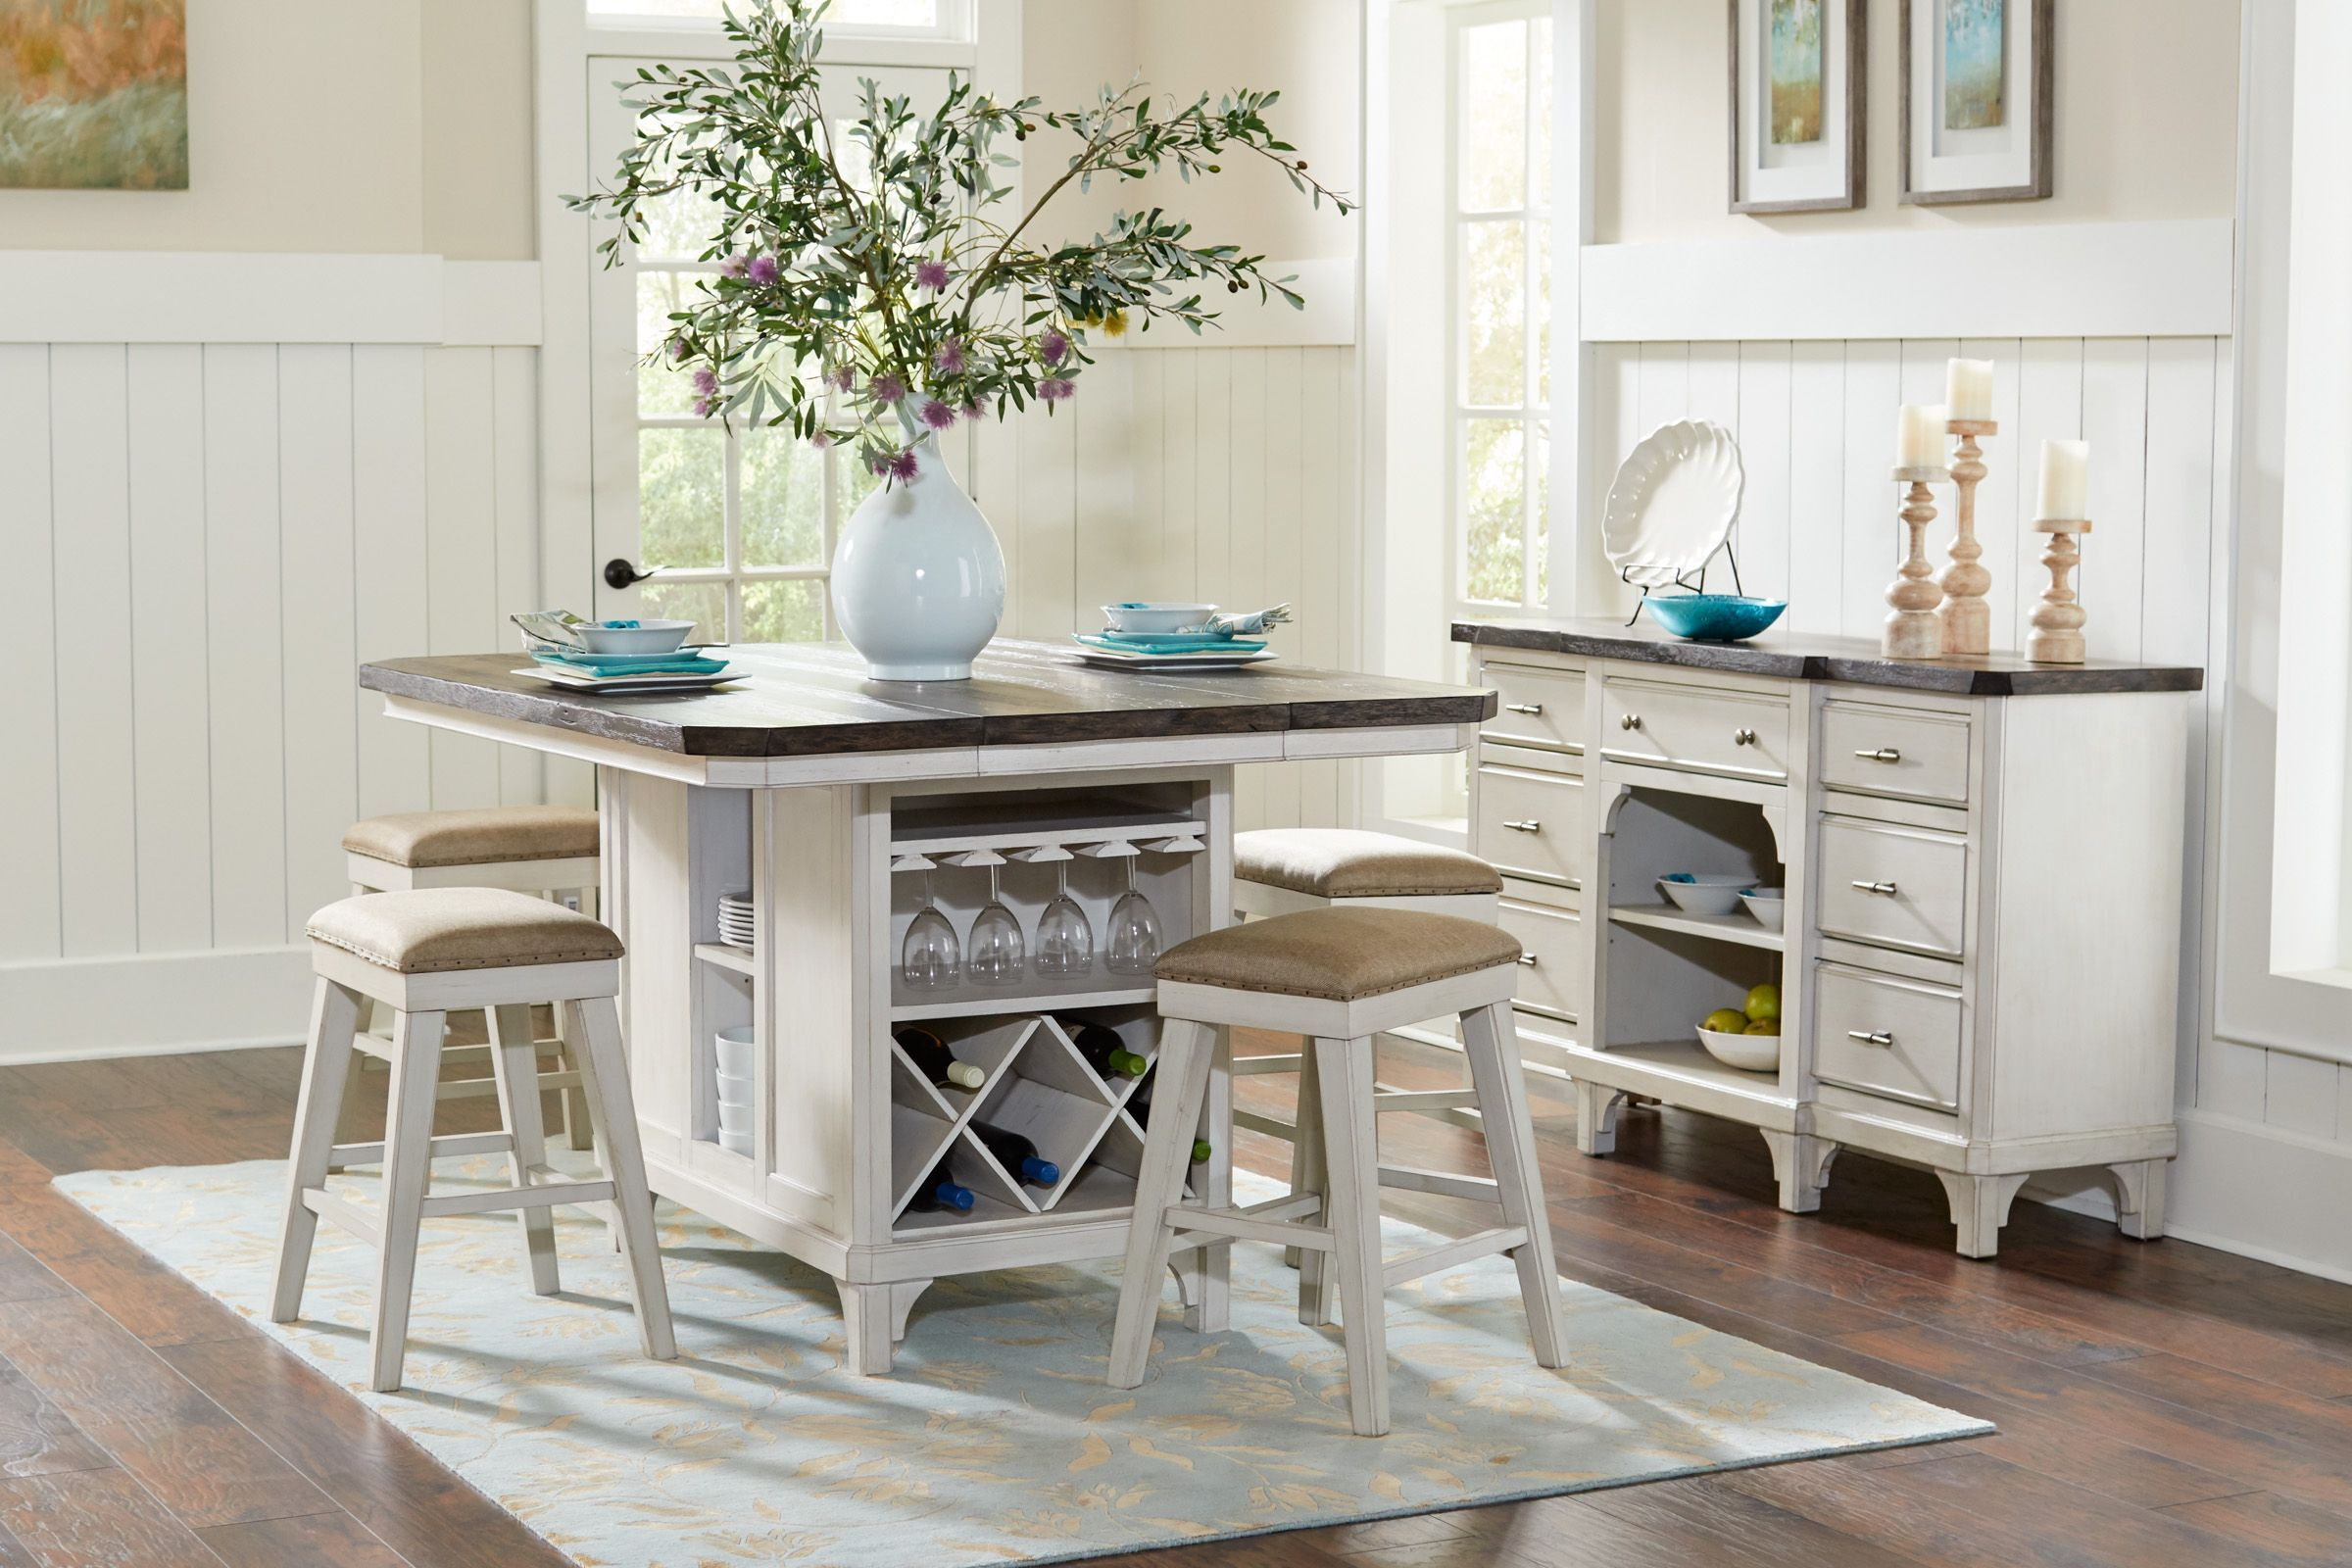 Mystic Island Table 4 Gathering Chairs Kitchen Table With